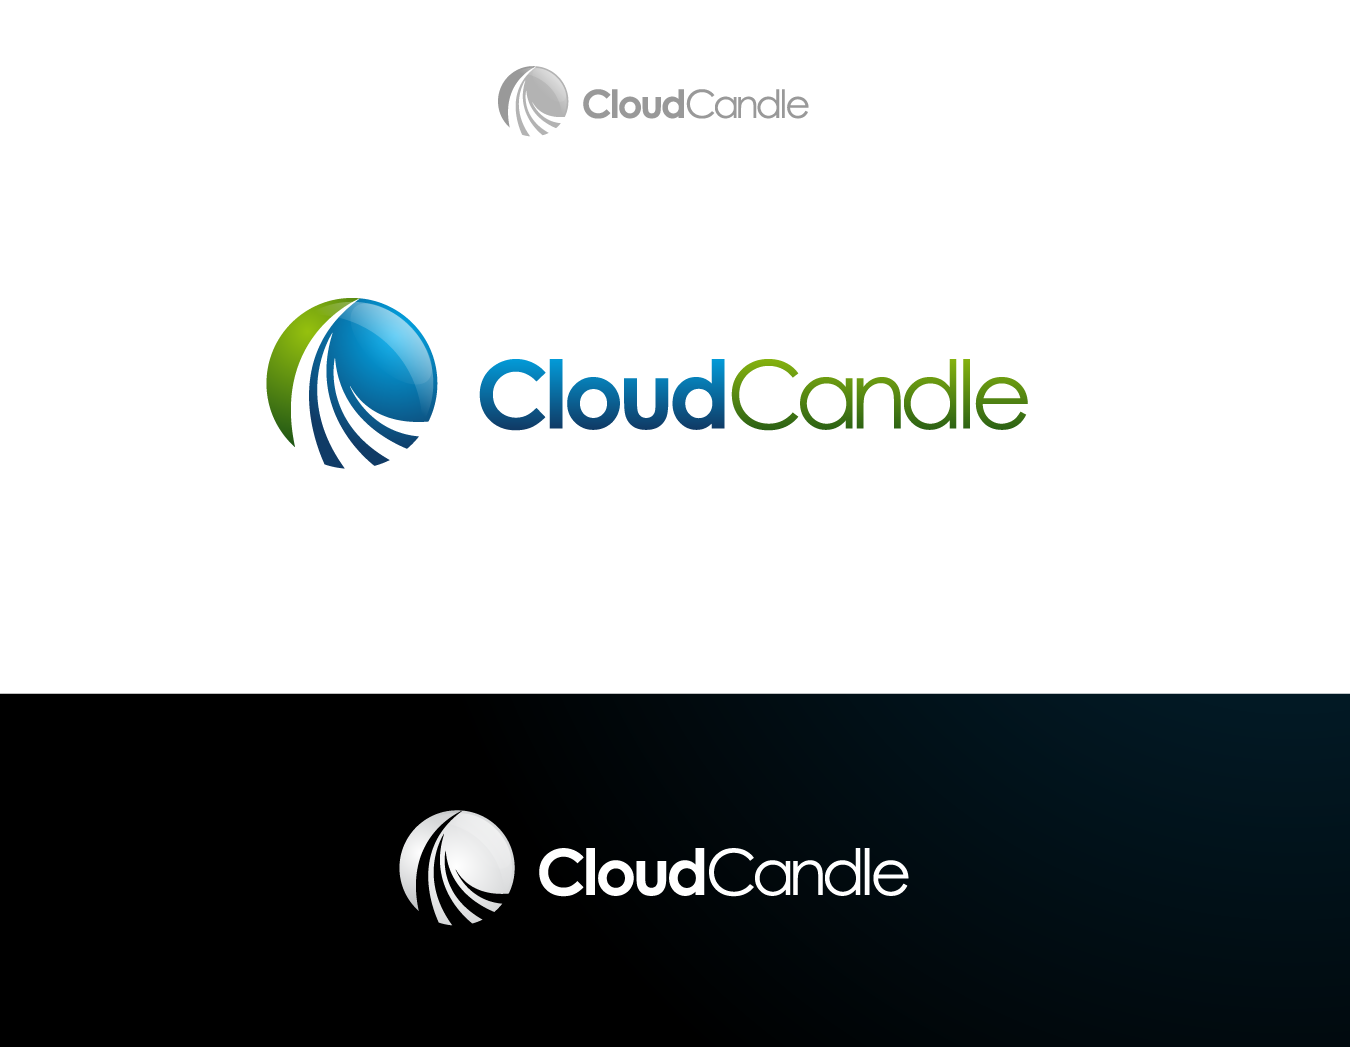 Help CloudCandle with a new logo